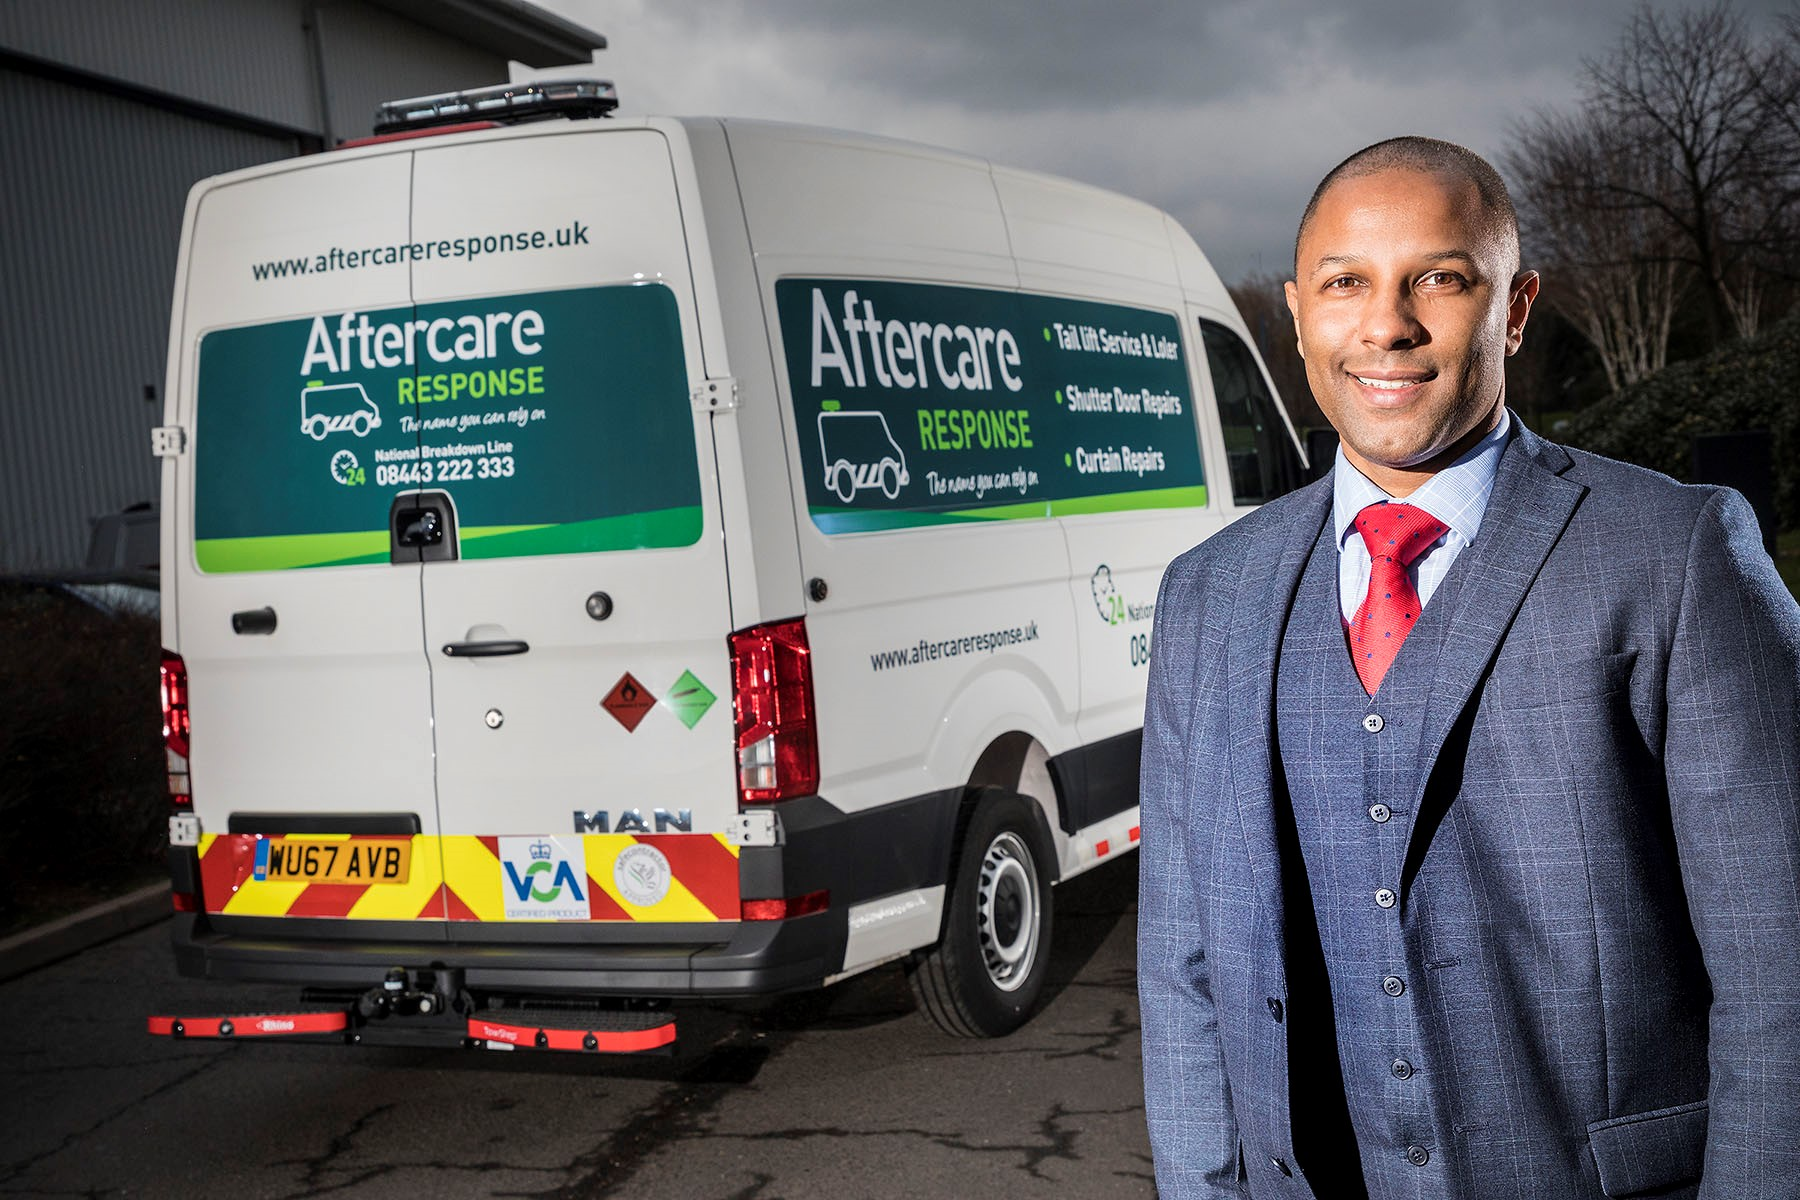 Dean spearheads Aftercare Response's drive for new business